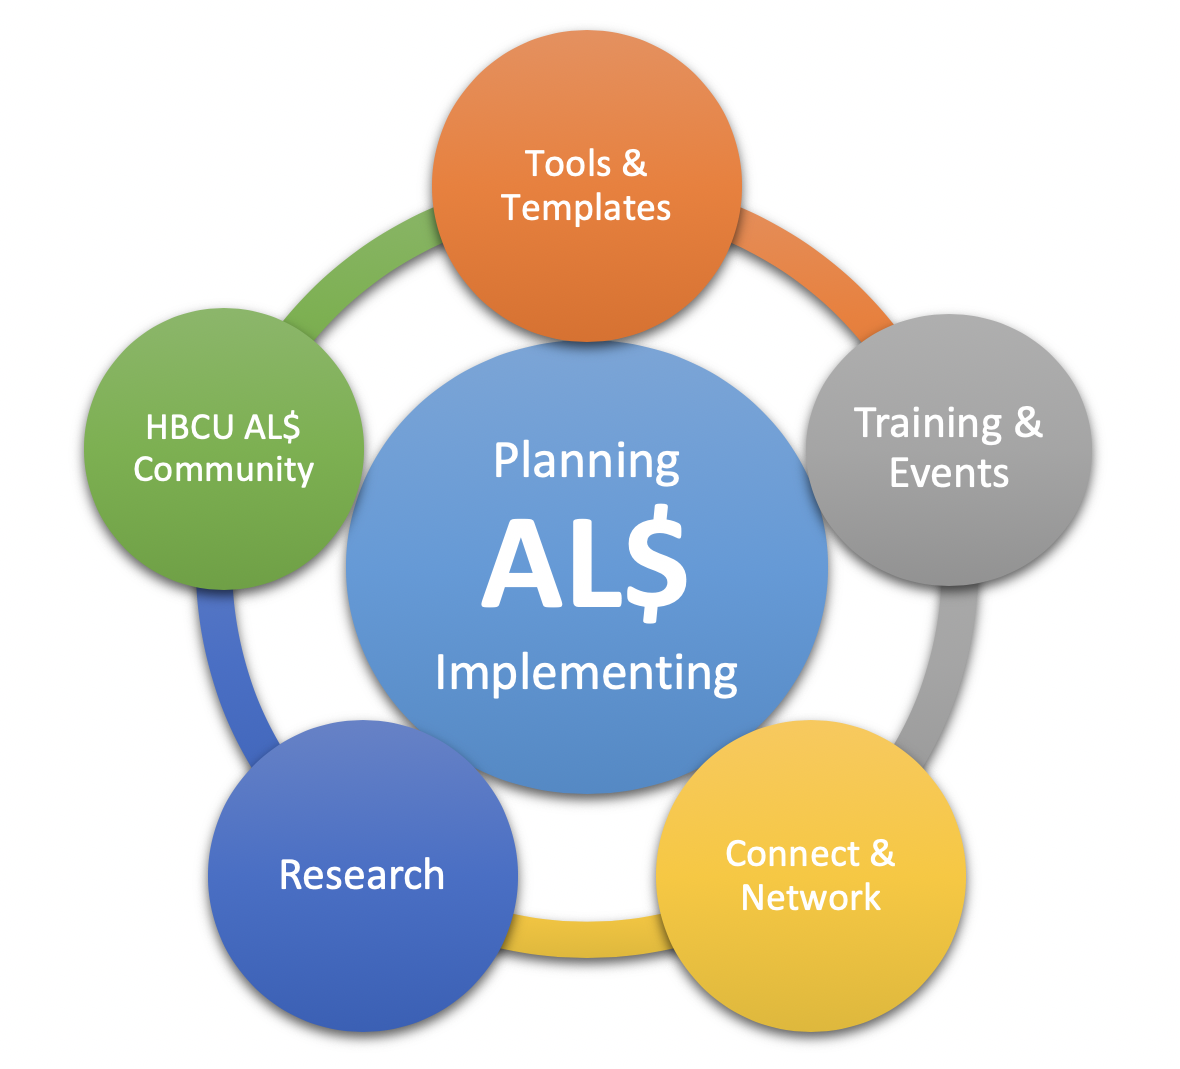 Graphic representing 5 steps in ALS planning and implementation. Tools and Templates, Training and EVents, Connect and Network, Research, and HBCU ALS community.